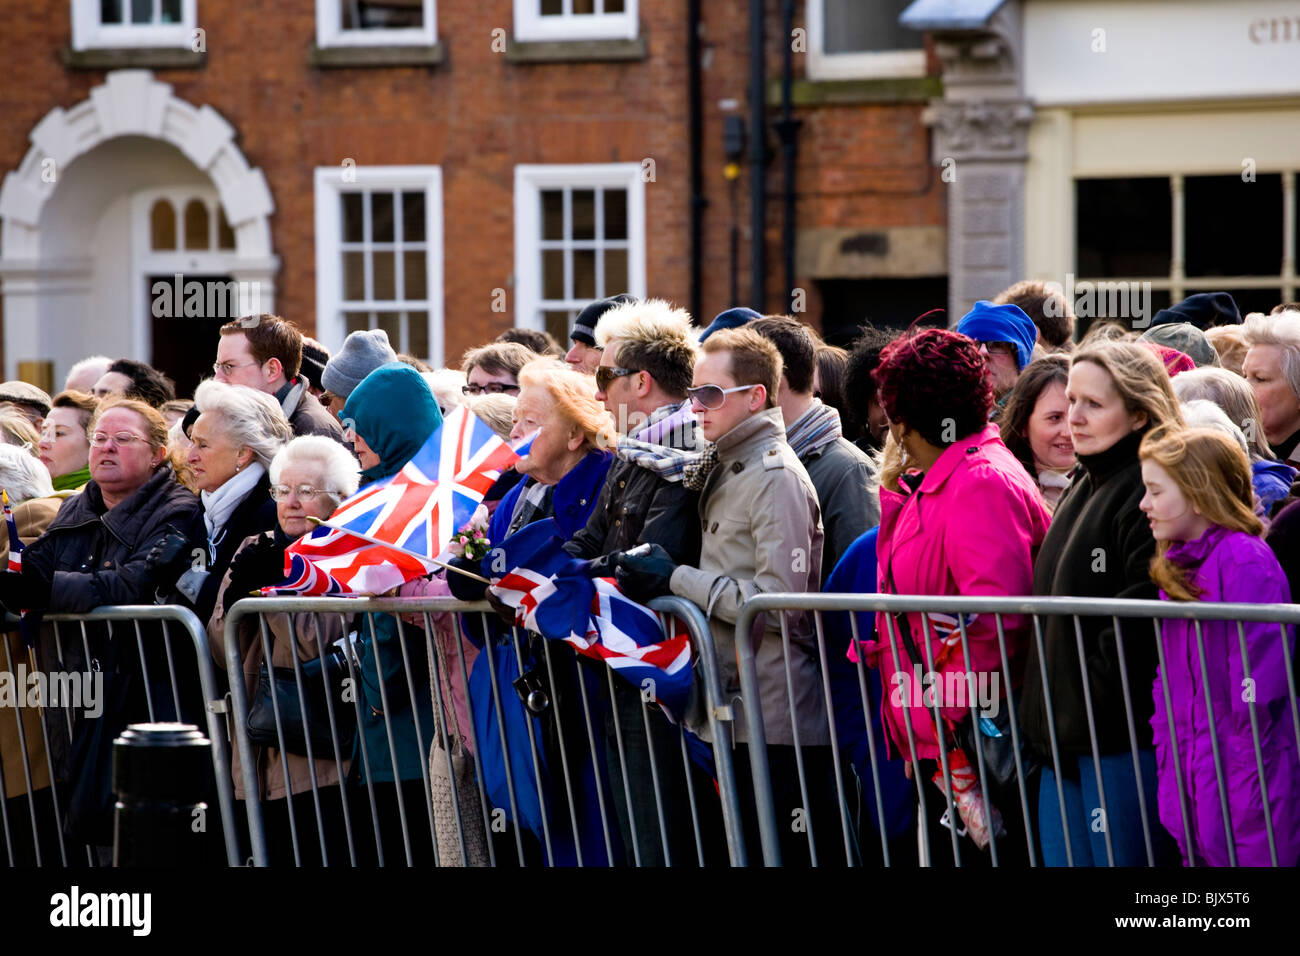 Eager crowds of onlookers wait to see The Queen attend Maundy Thursday Easter celebrations outside Derby Cathedral. - Stock Image